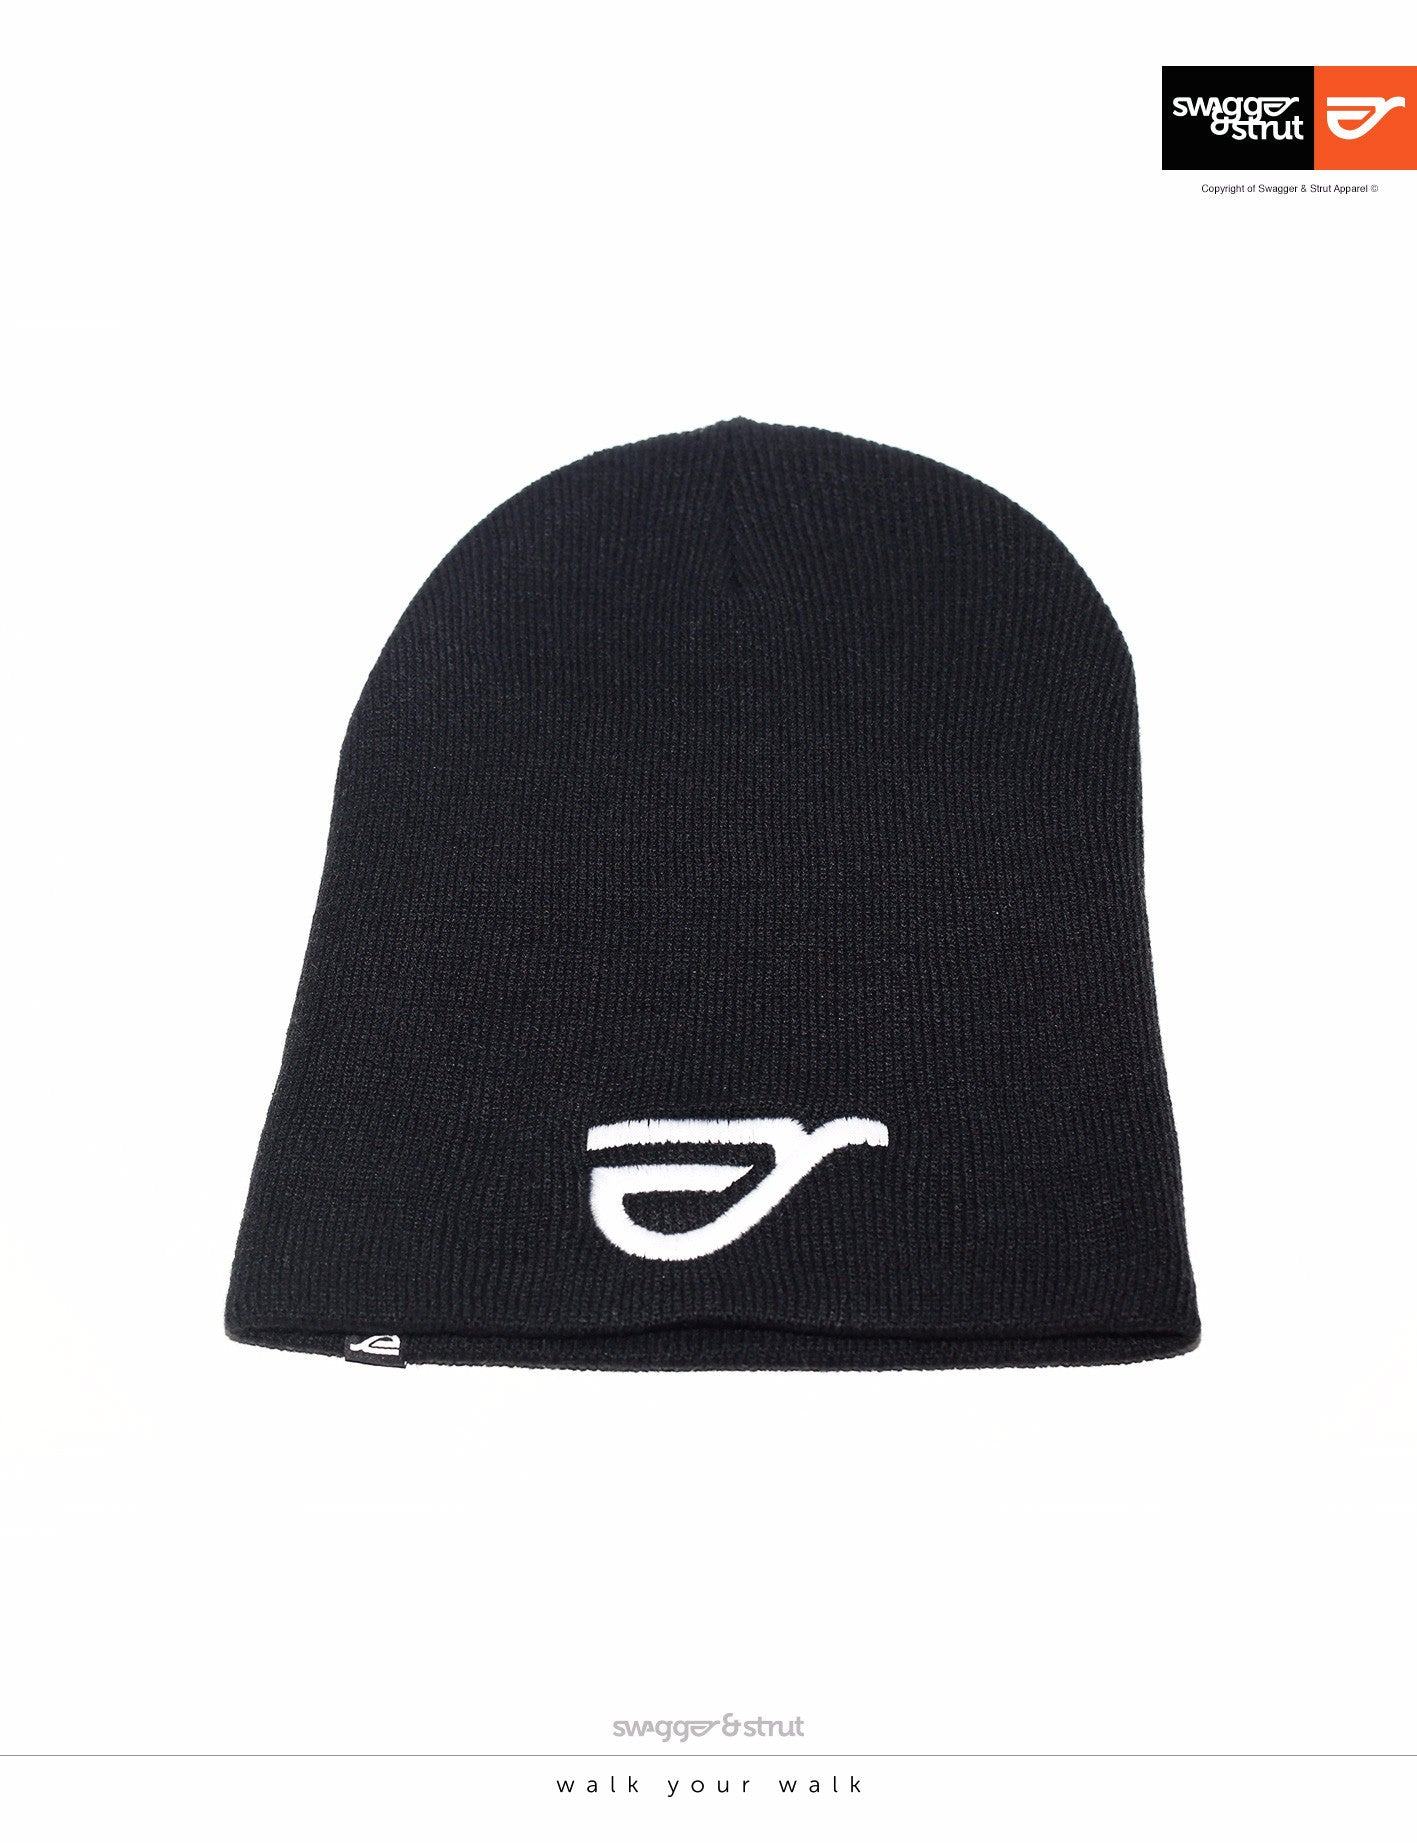 Black Beanie with Swagger & Strut Embroidered logo